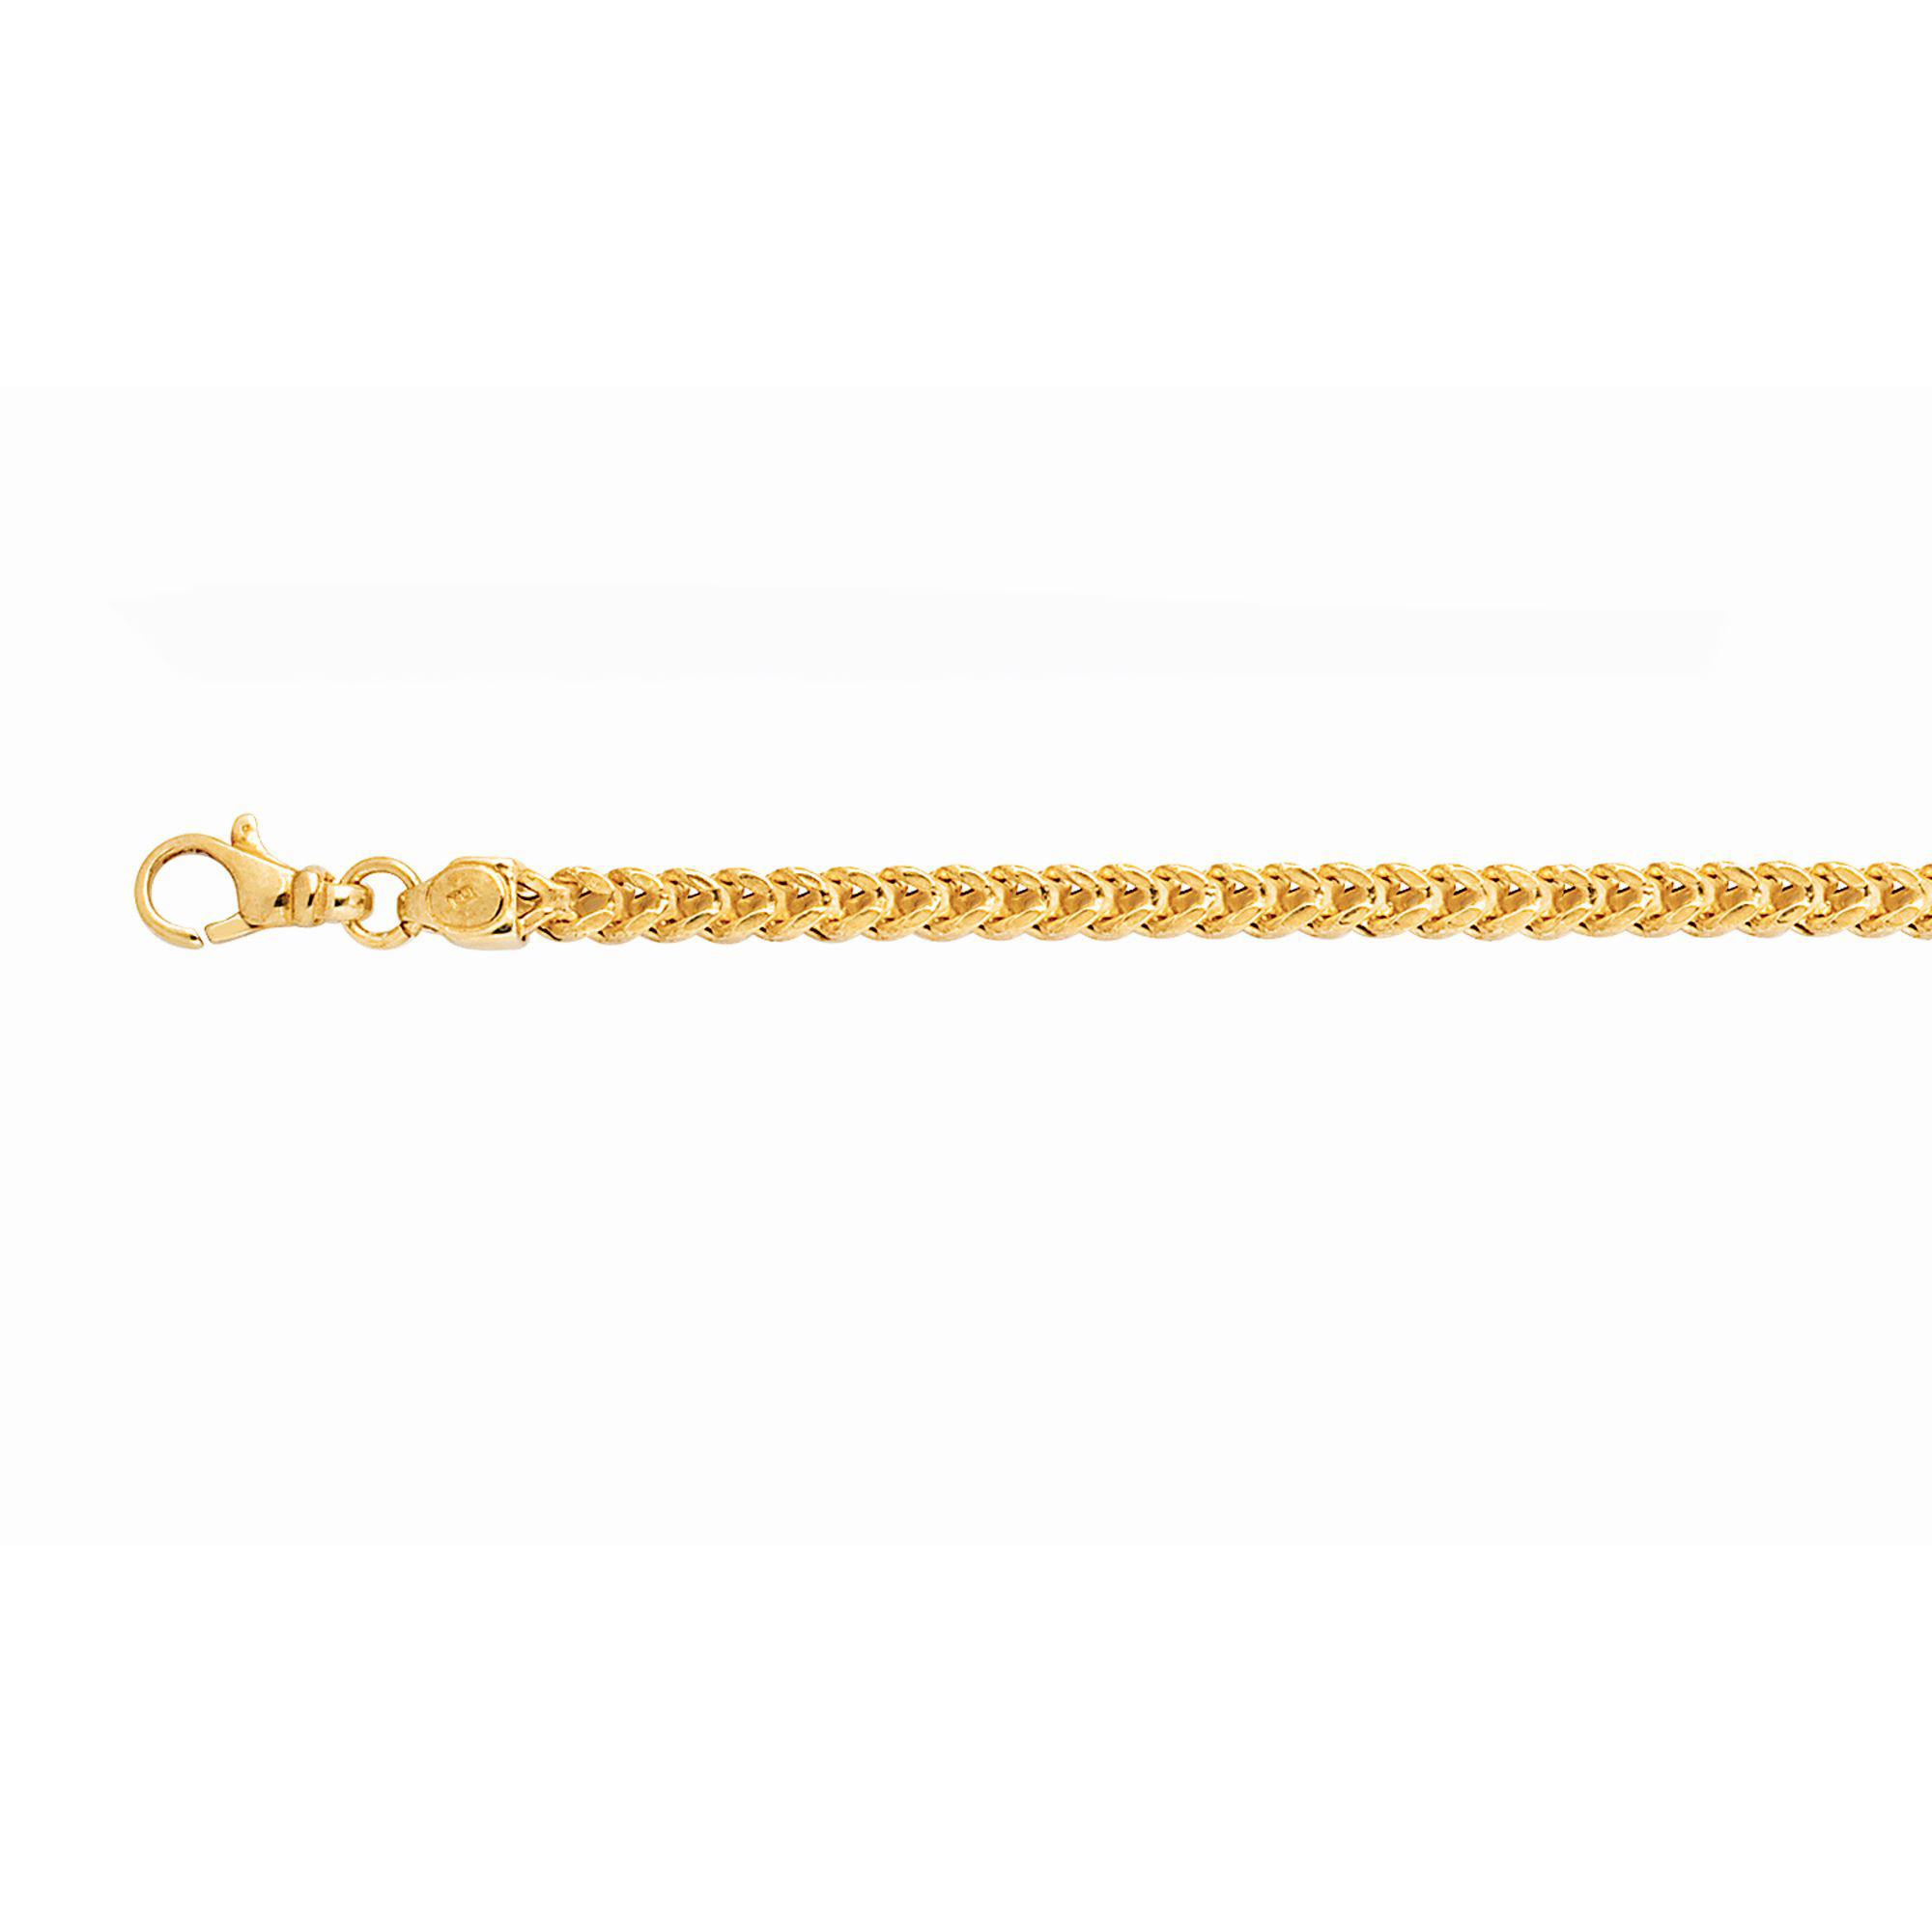 14kt 24 inches Yellow Gold 4.4mm Square Franco Chain with Lobster Clasp